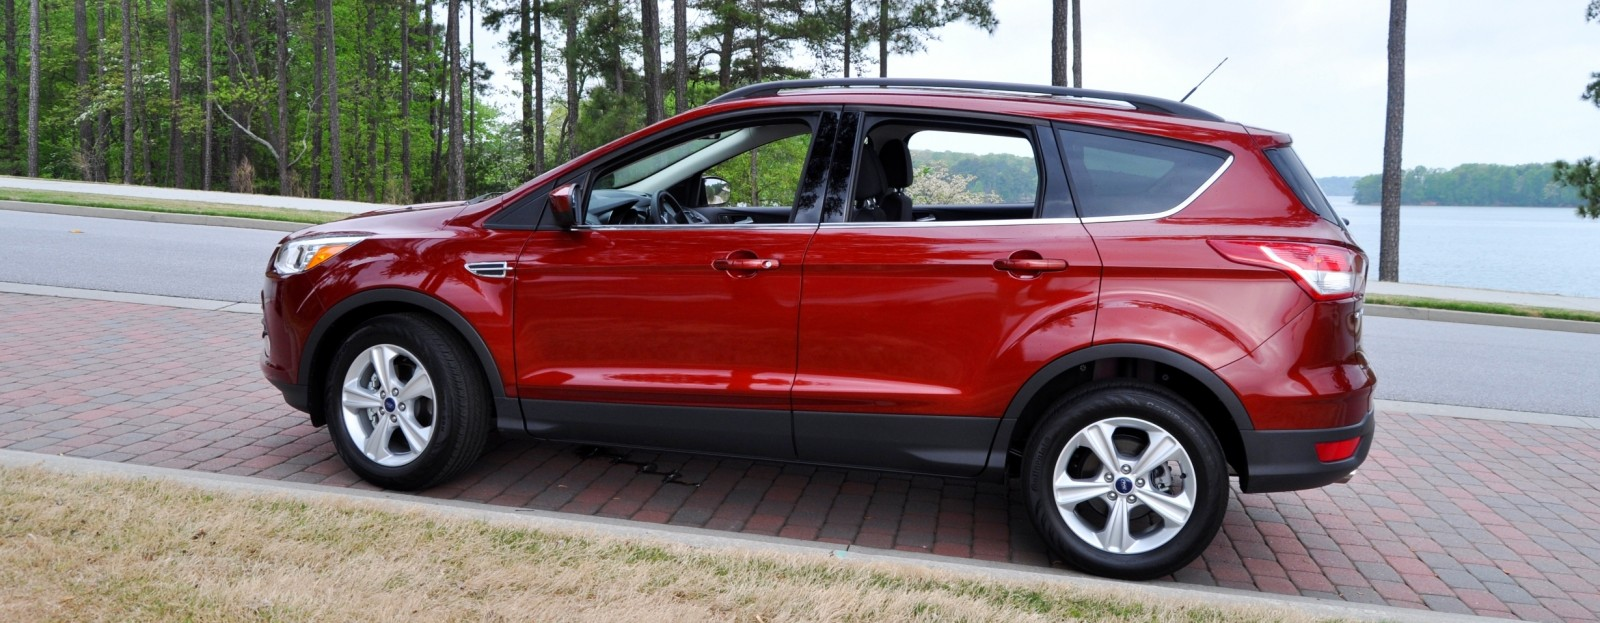 Road Test Review 2014 Ford Escape Se 1 6 Ecoboost